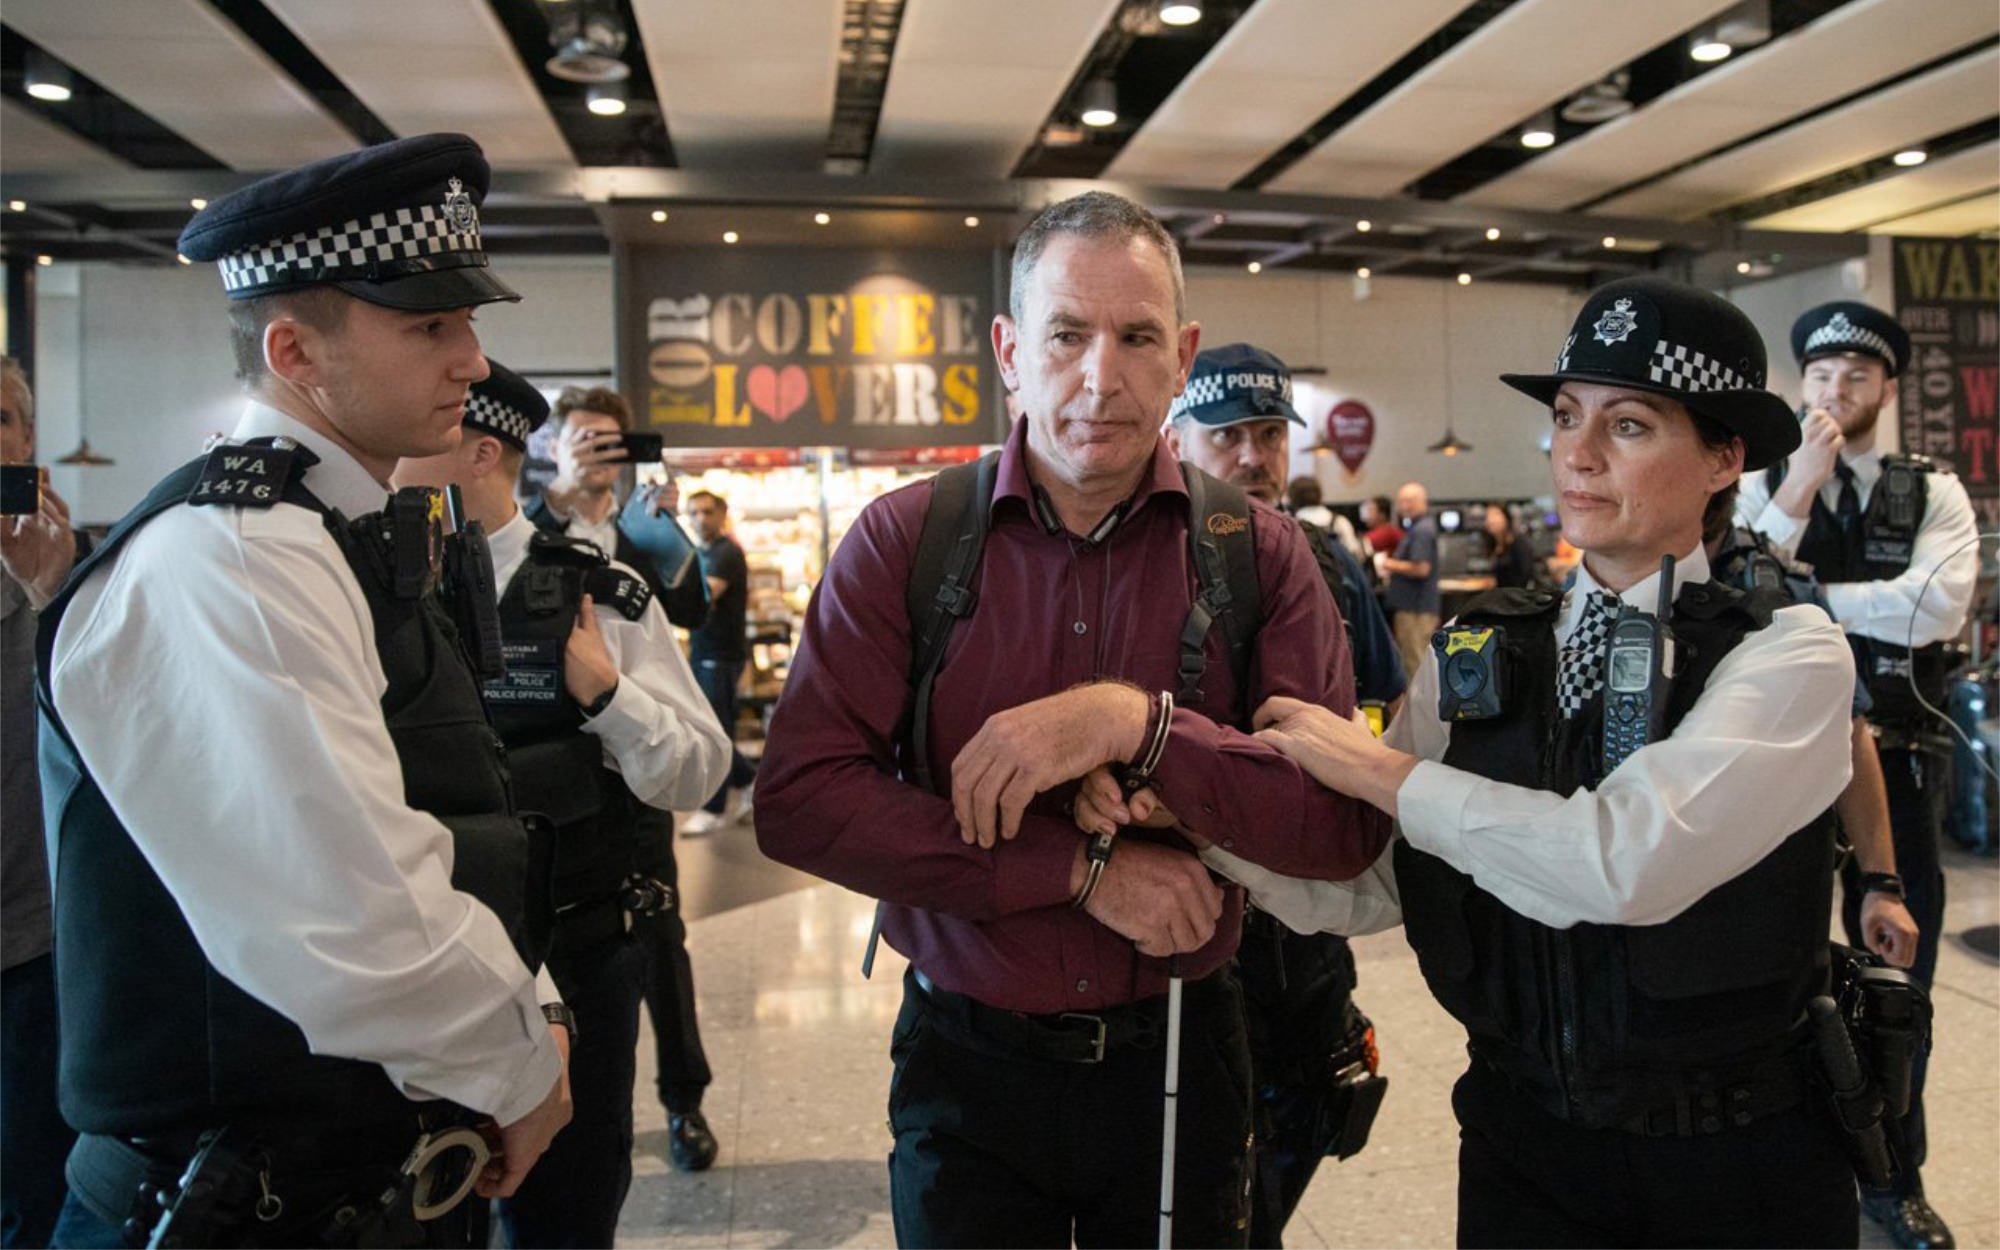 Heathrow Pause protesters arrested and drone jamming technology used